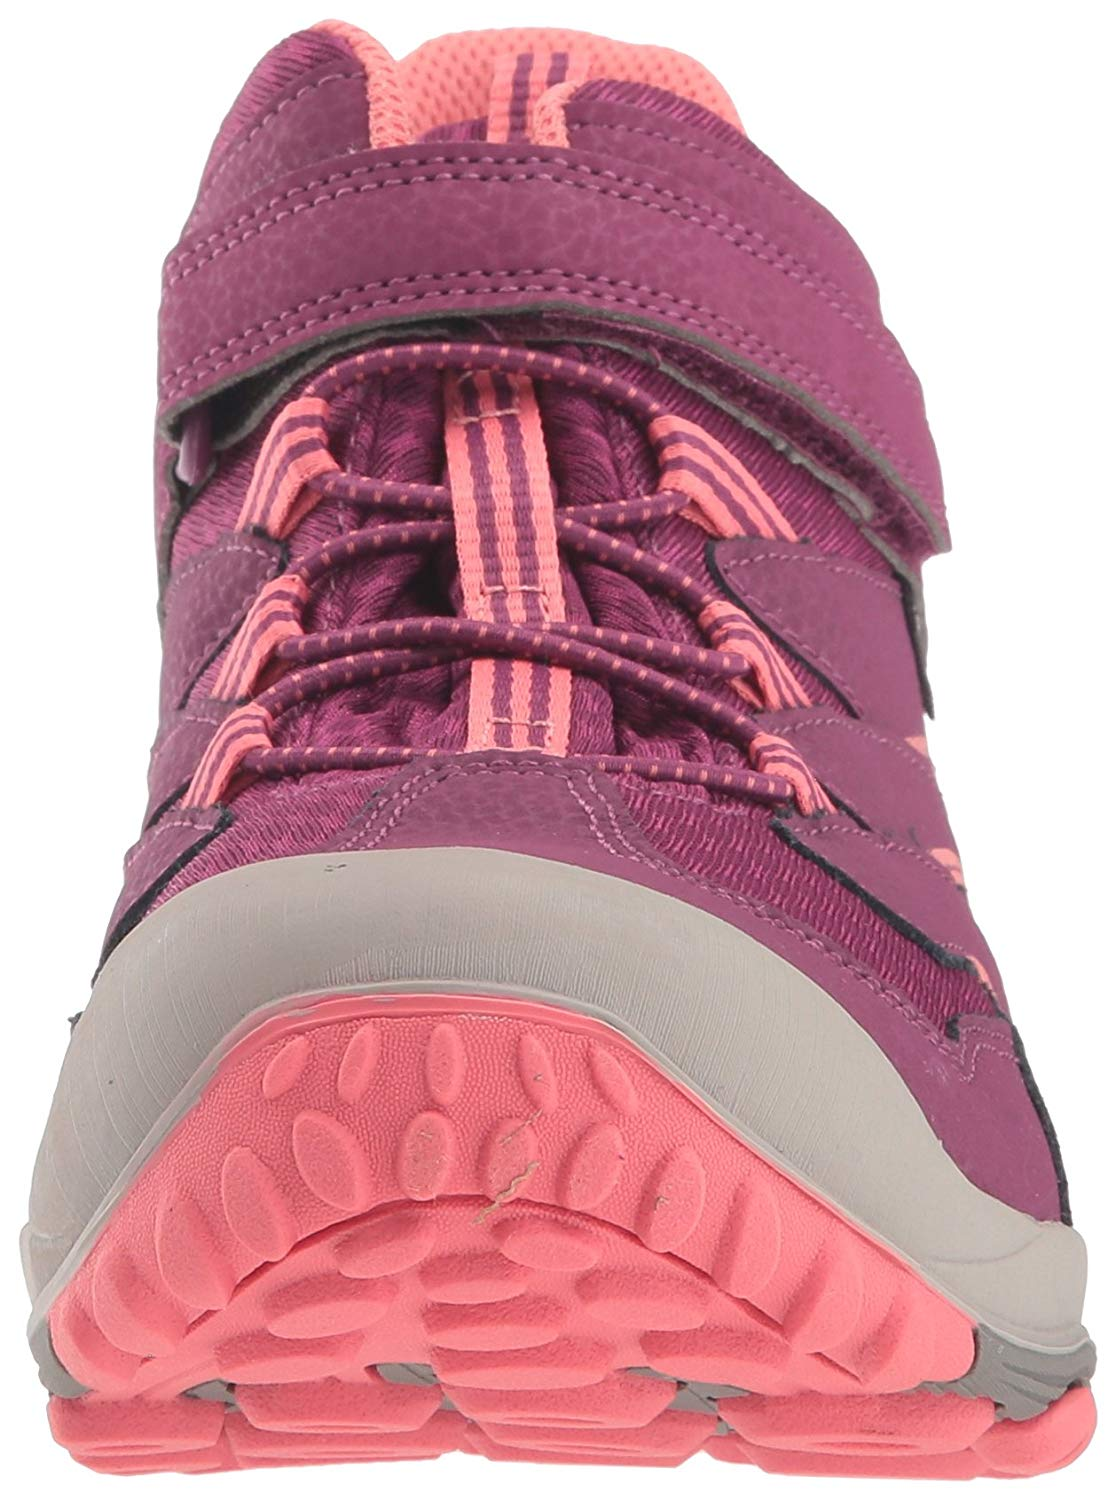 e3987414a7c Details about Merrell Kids' Chameleon 7 Access Mid a/C WTRPF, Berry/Coral,  Size 4 Big Kid lNB2